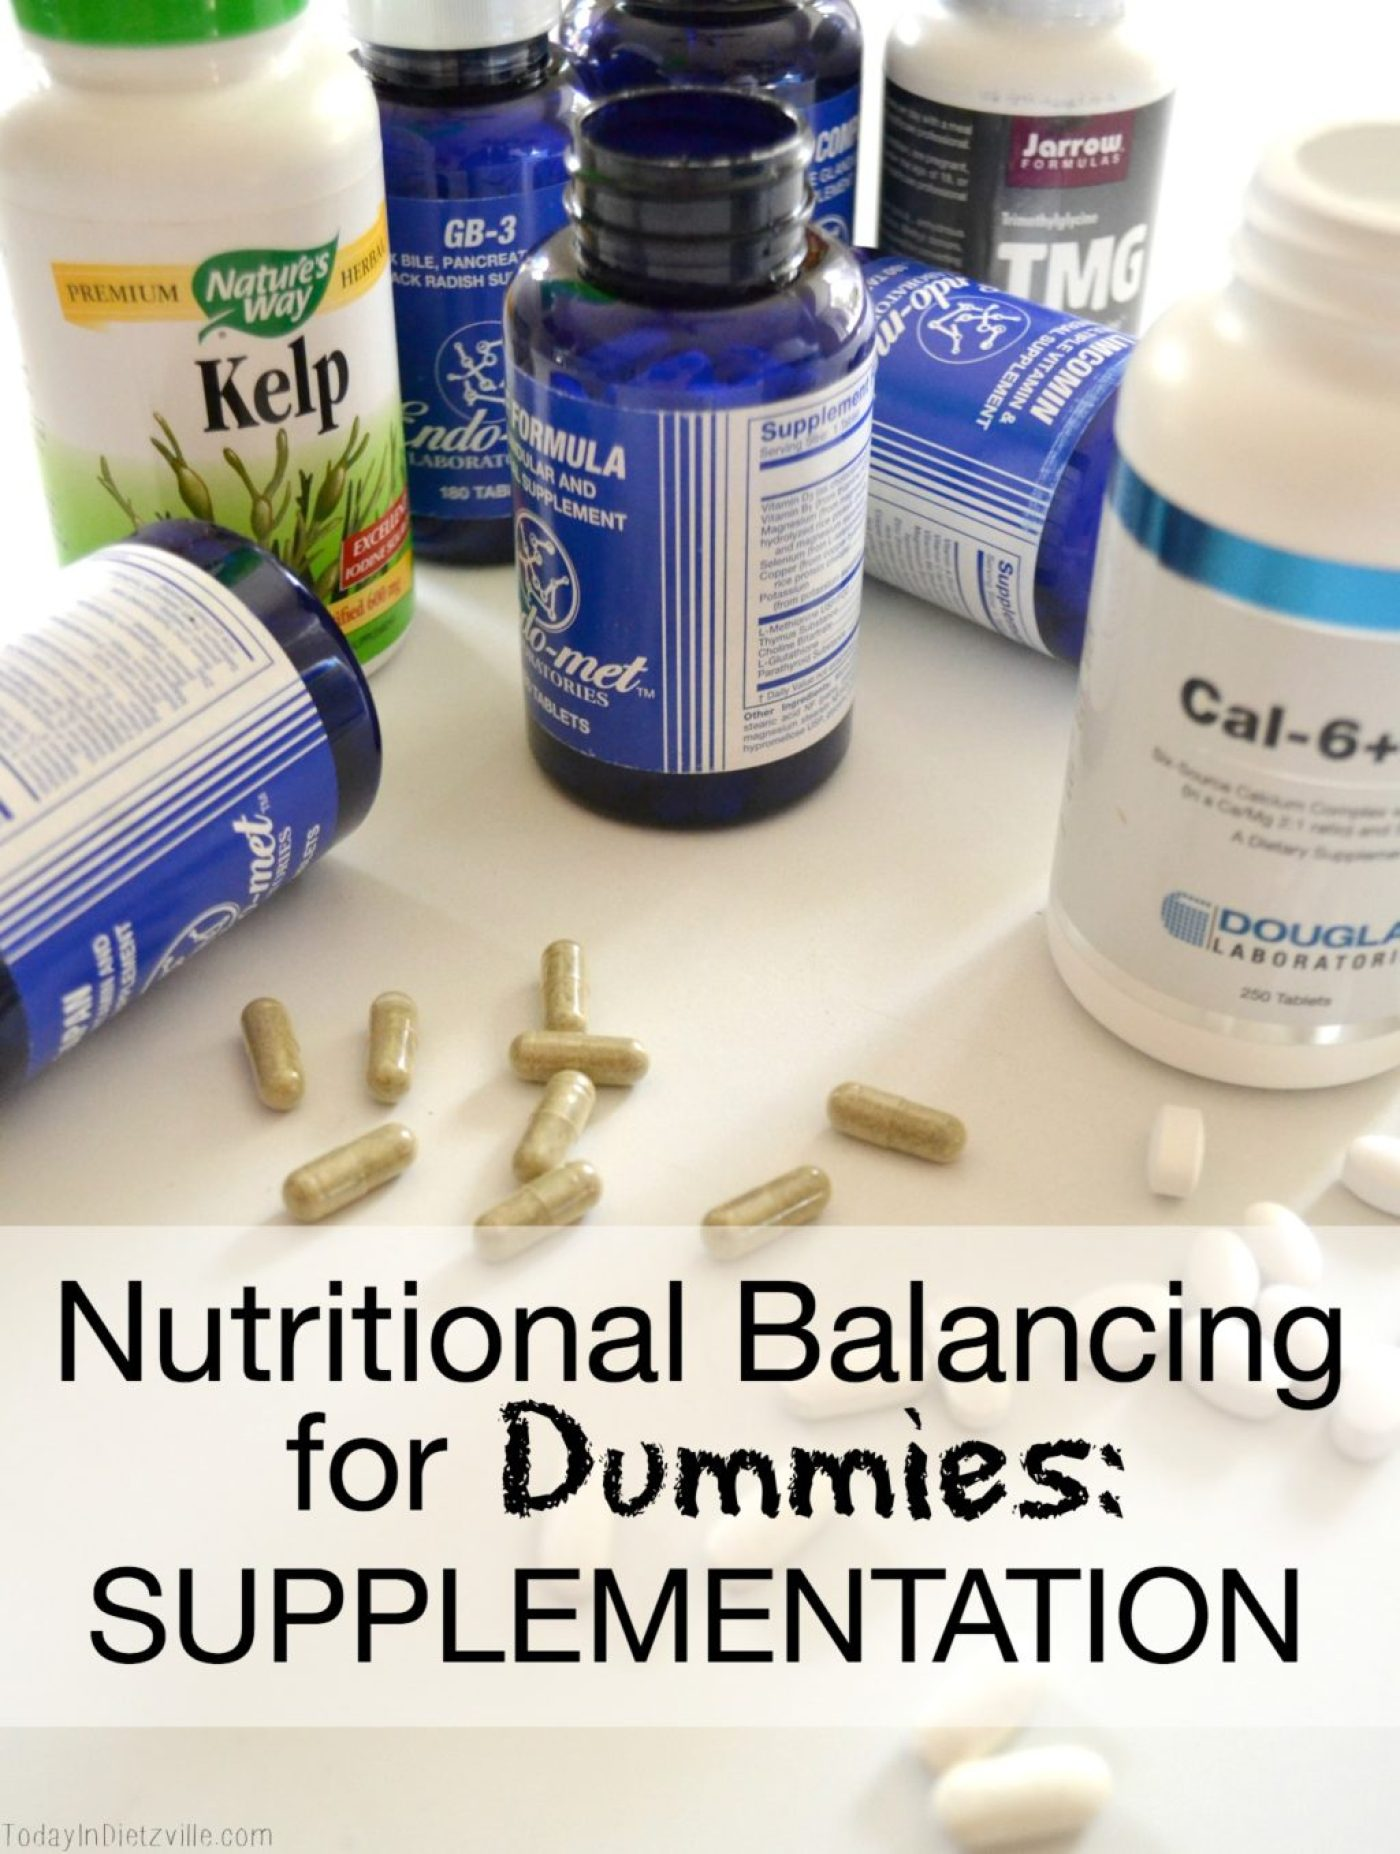 NB for Dummies Supplementation AllTheNourishingThings